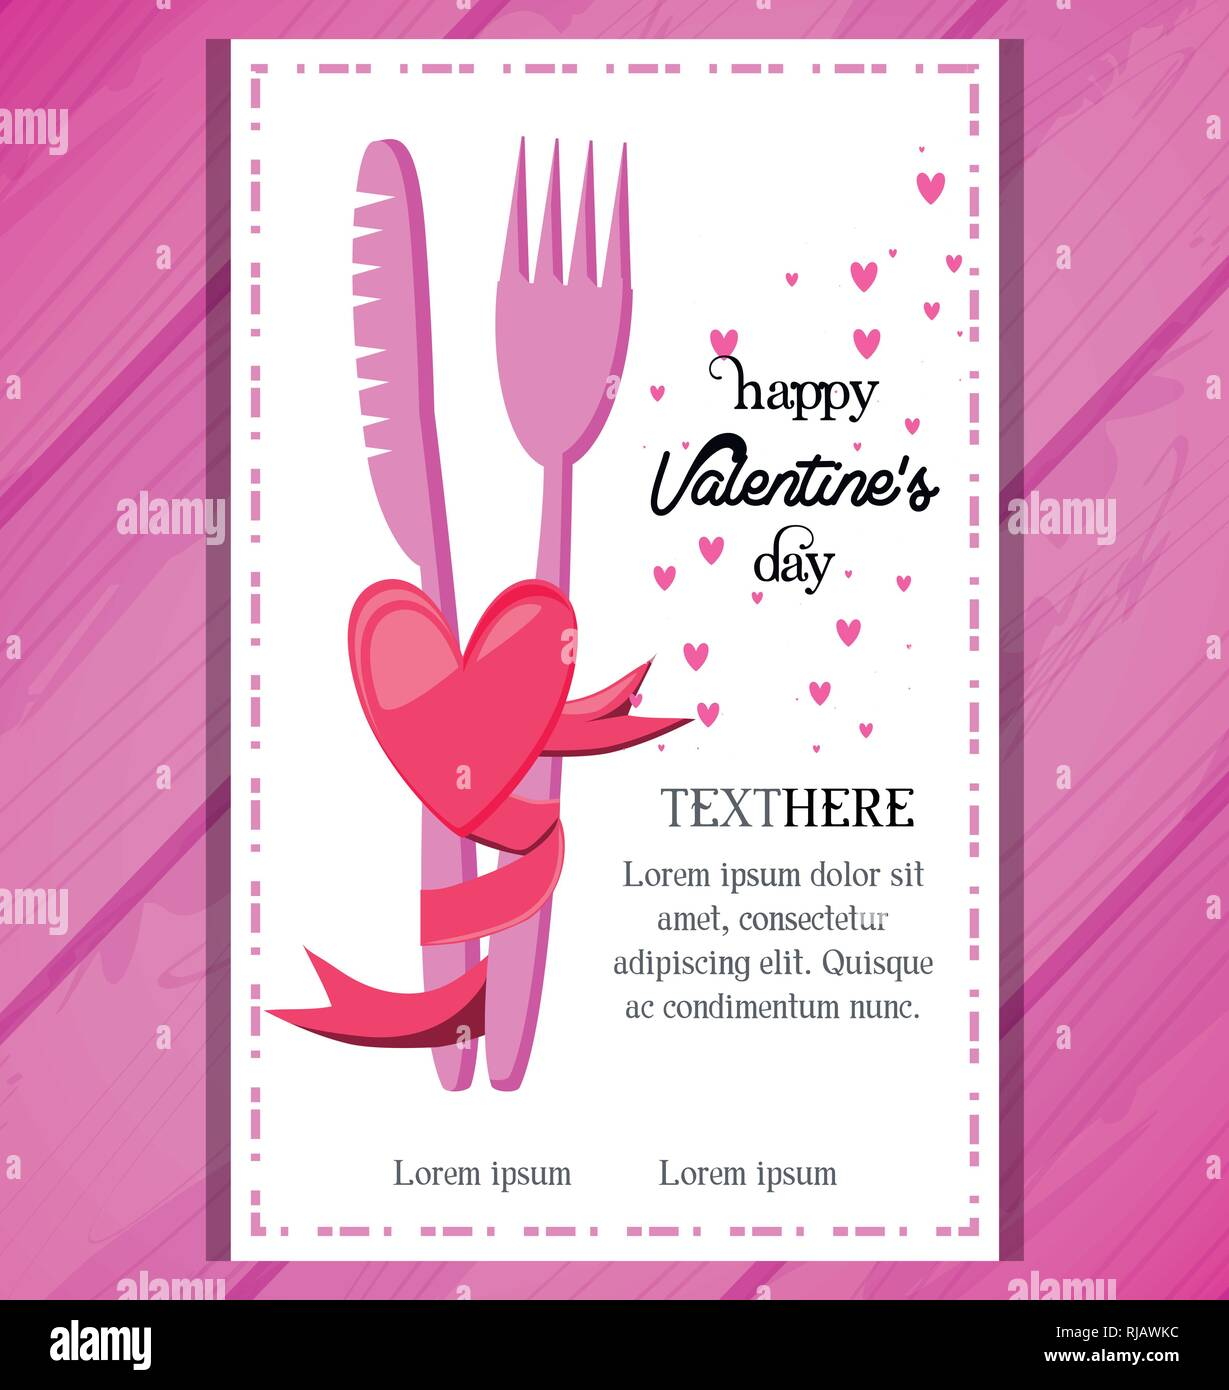 Invitation Card Dinner High Resolution Stock Photography and Images - Alamy